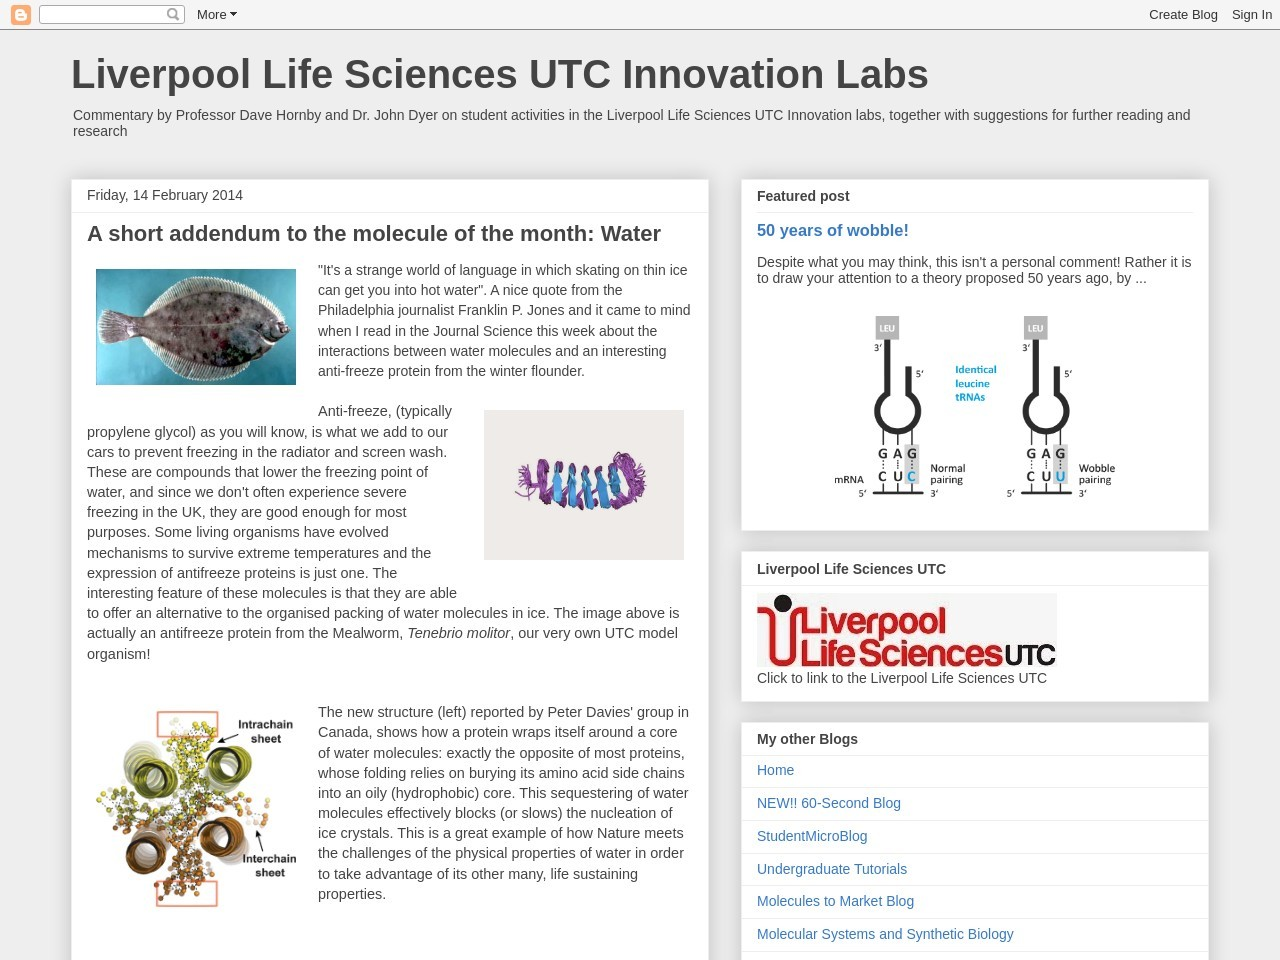 A short addendum to the molecule of the month – Liverpool Life …